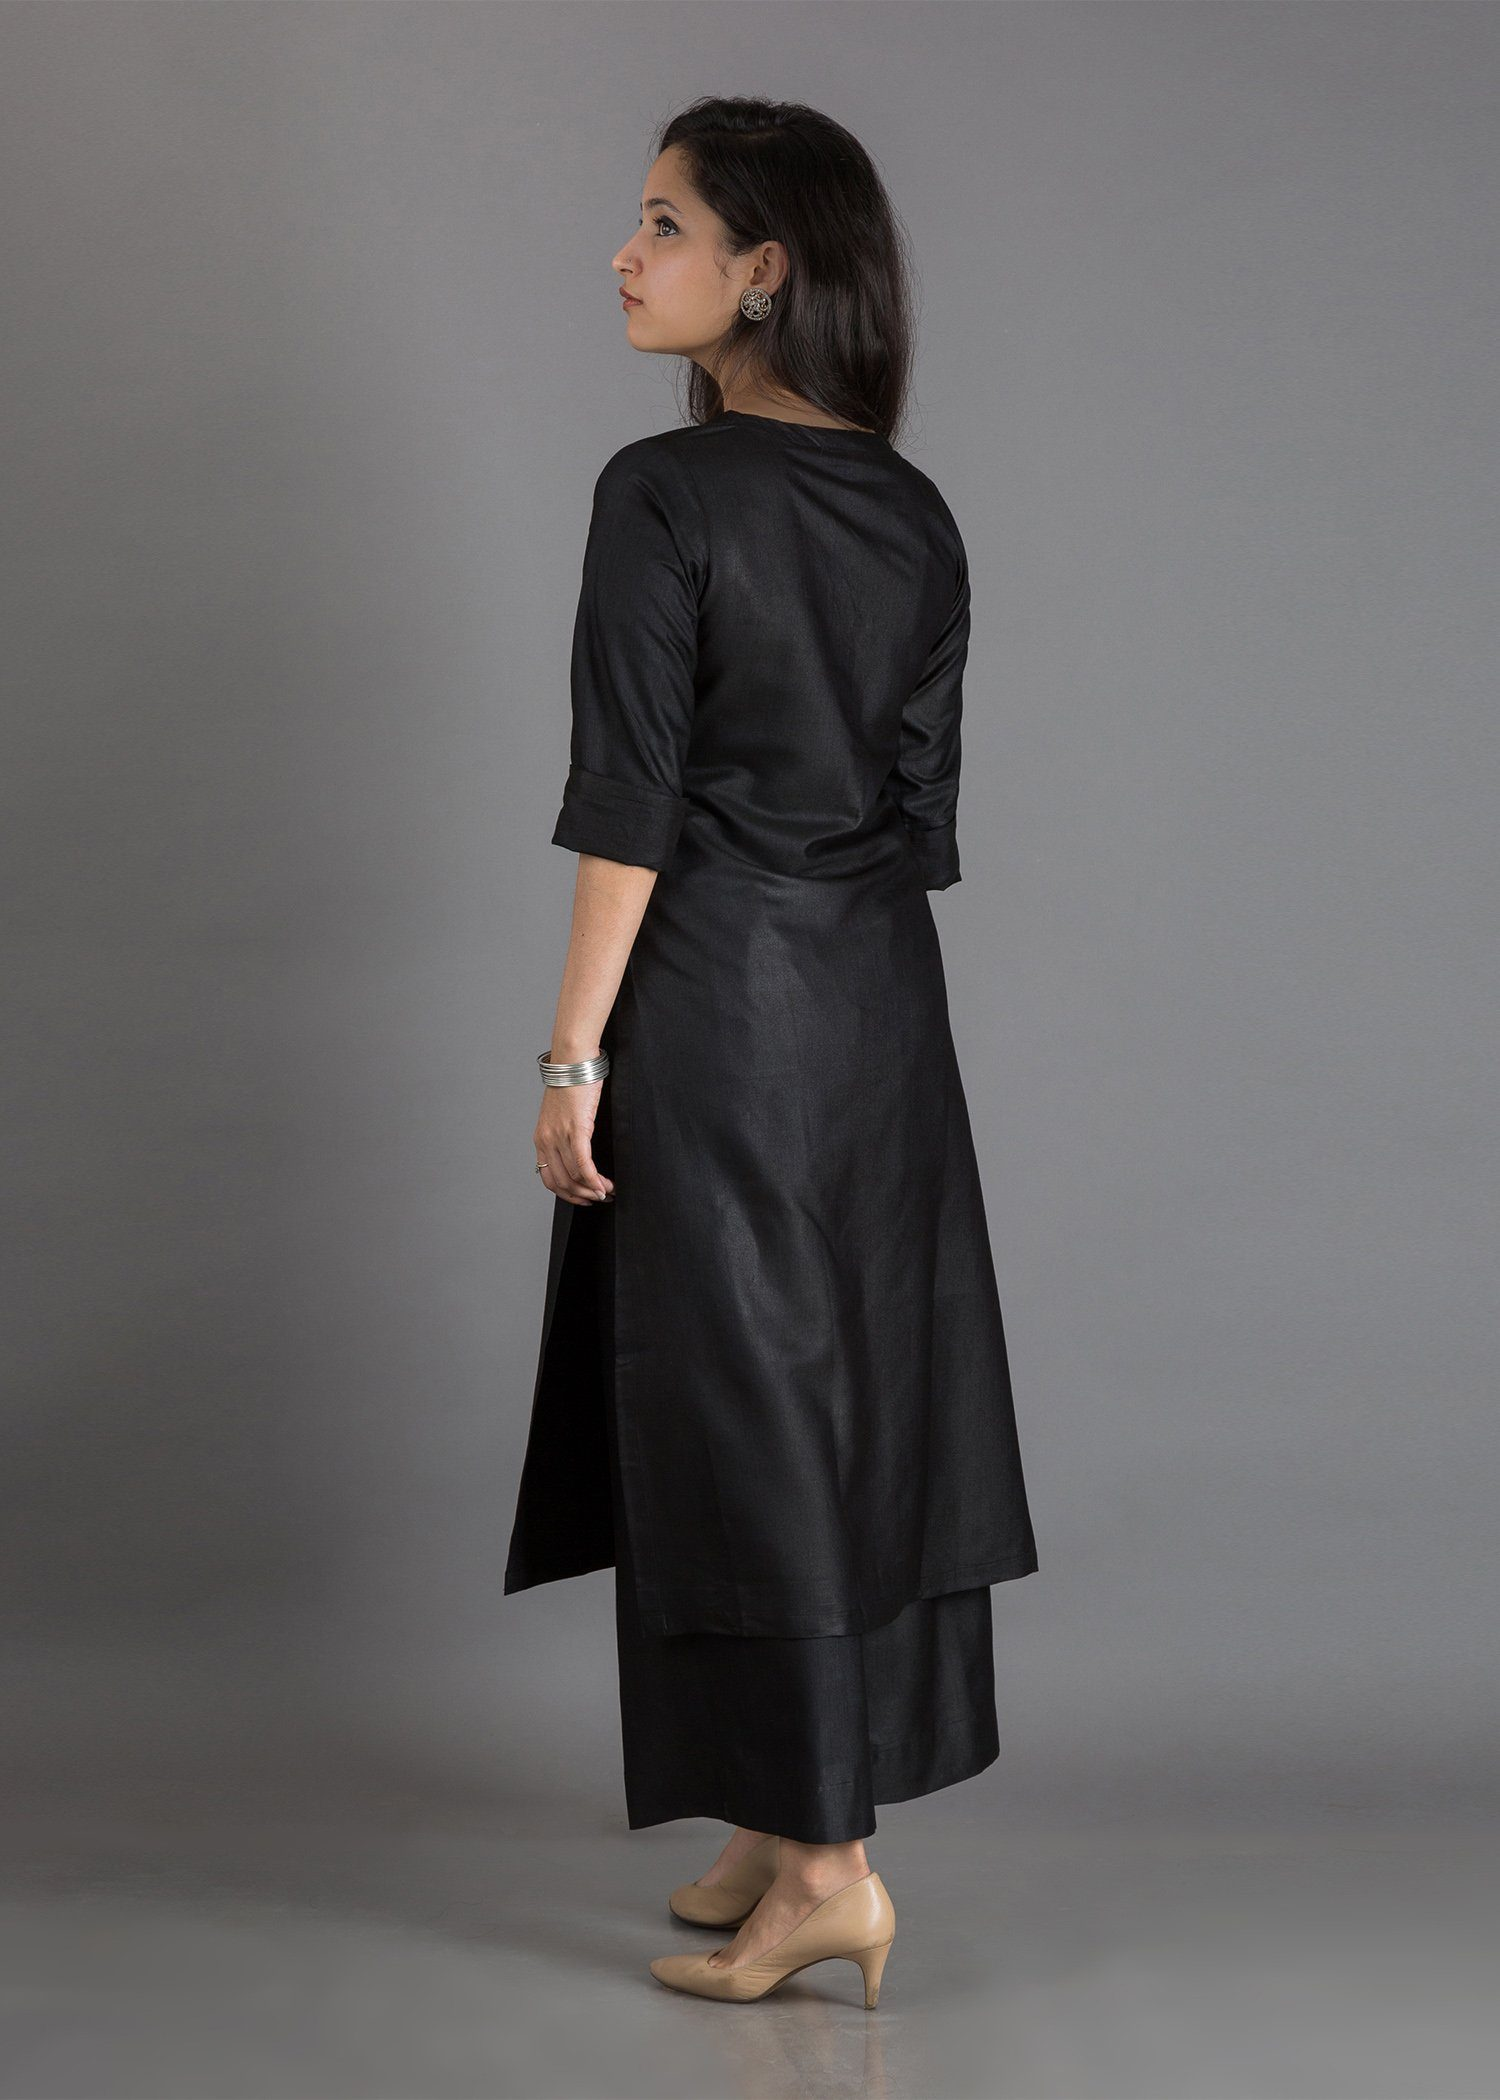 Raw Silk Black Dress - Chilgozay Clothing